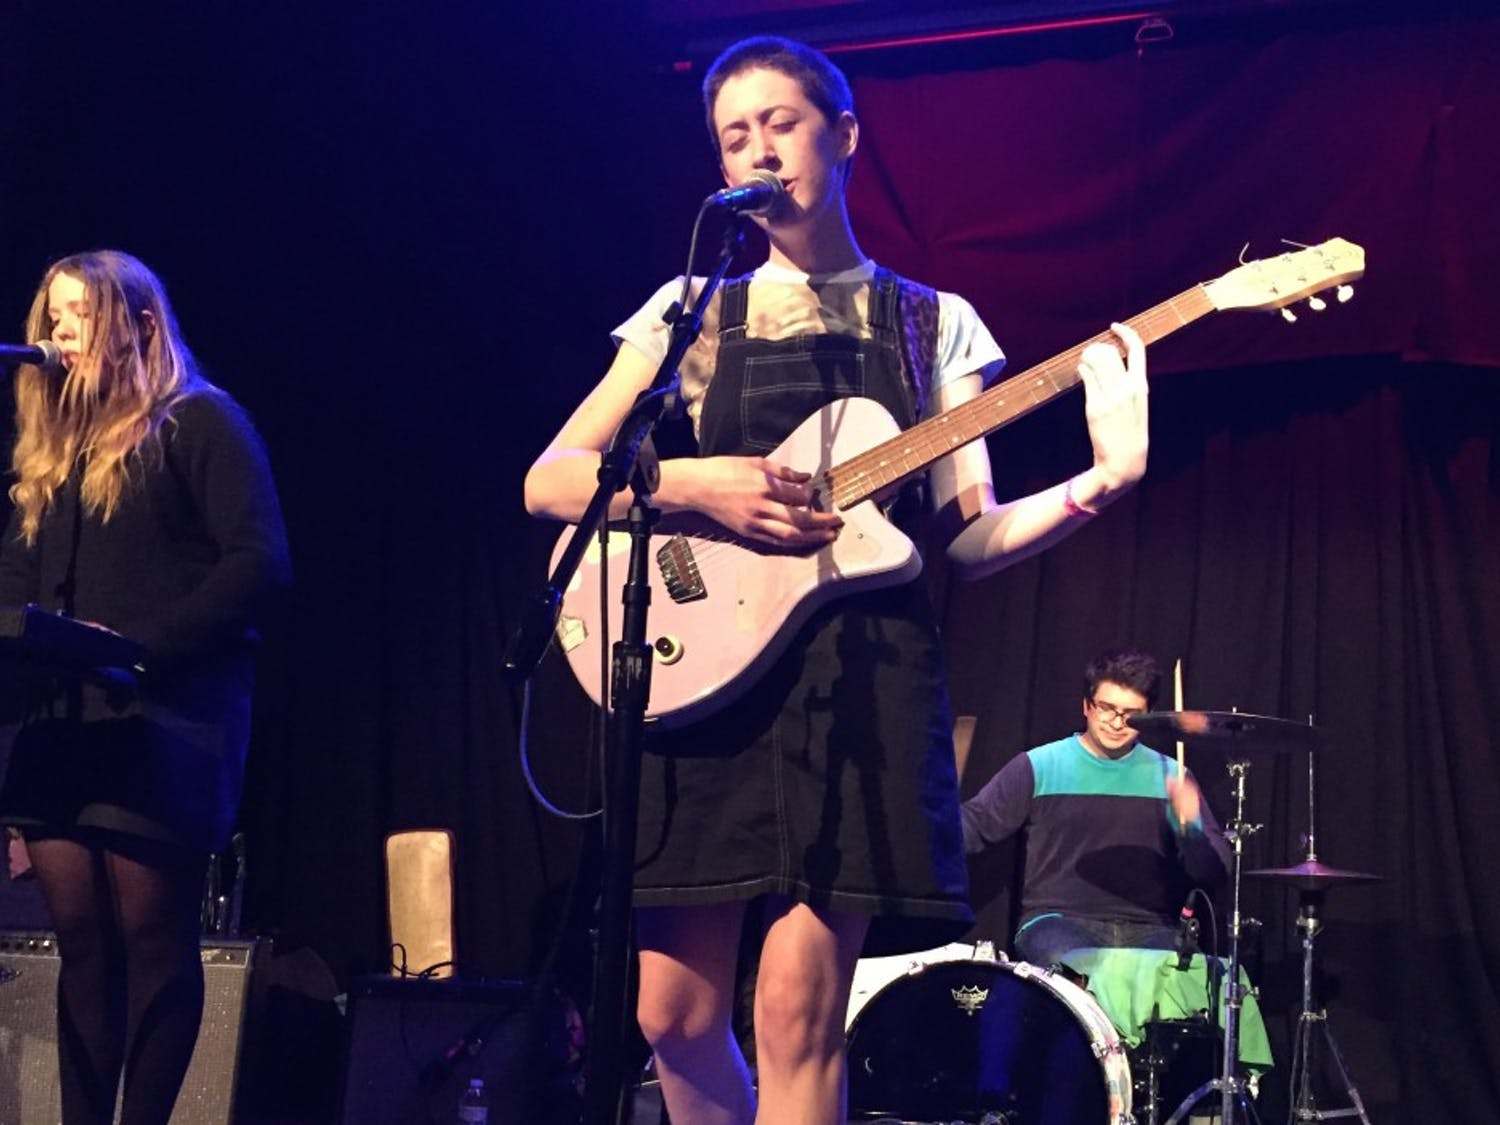 Frankie Cosmos' High Noon Saloon performance on Sunday promoted affirmation and kindness, creating a sense of happiness and community among the crowd.